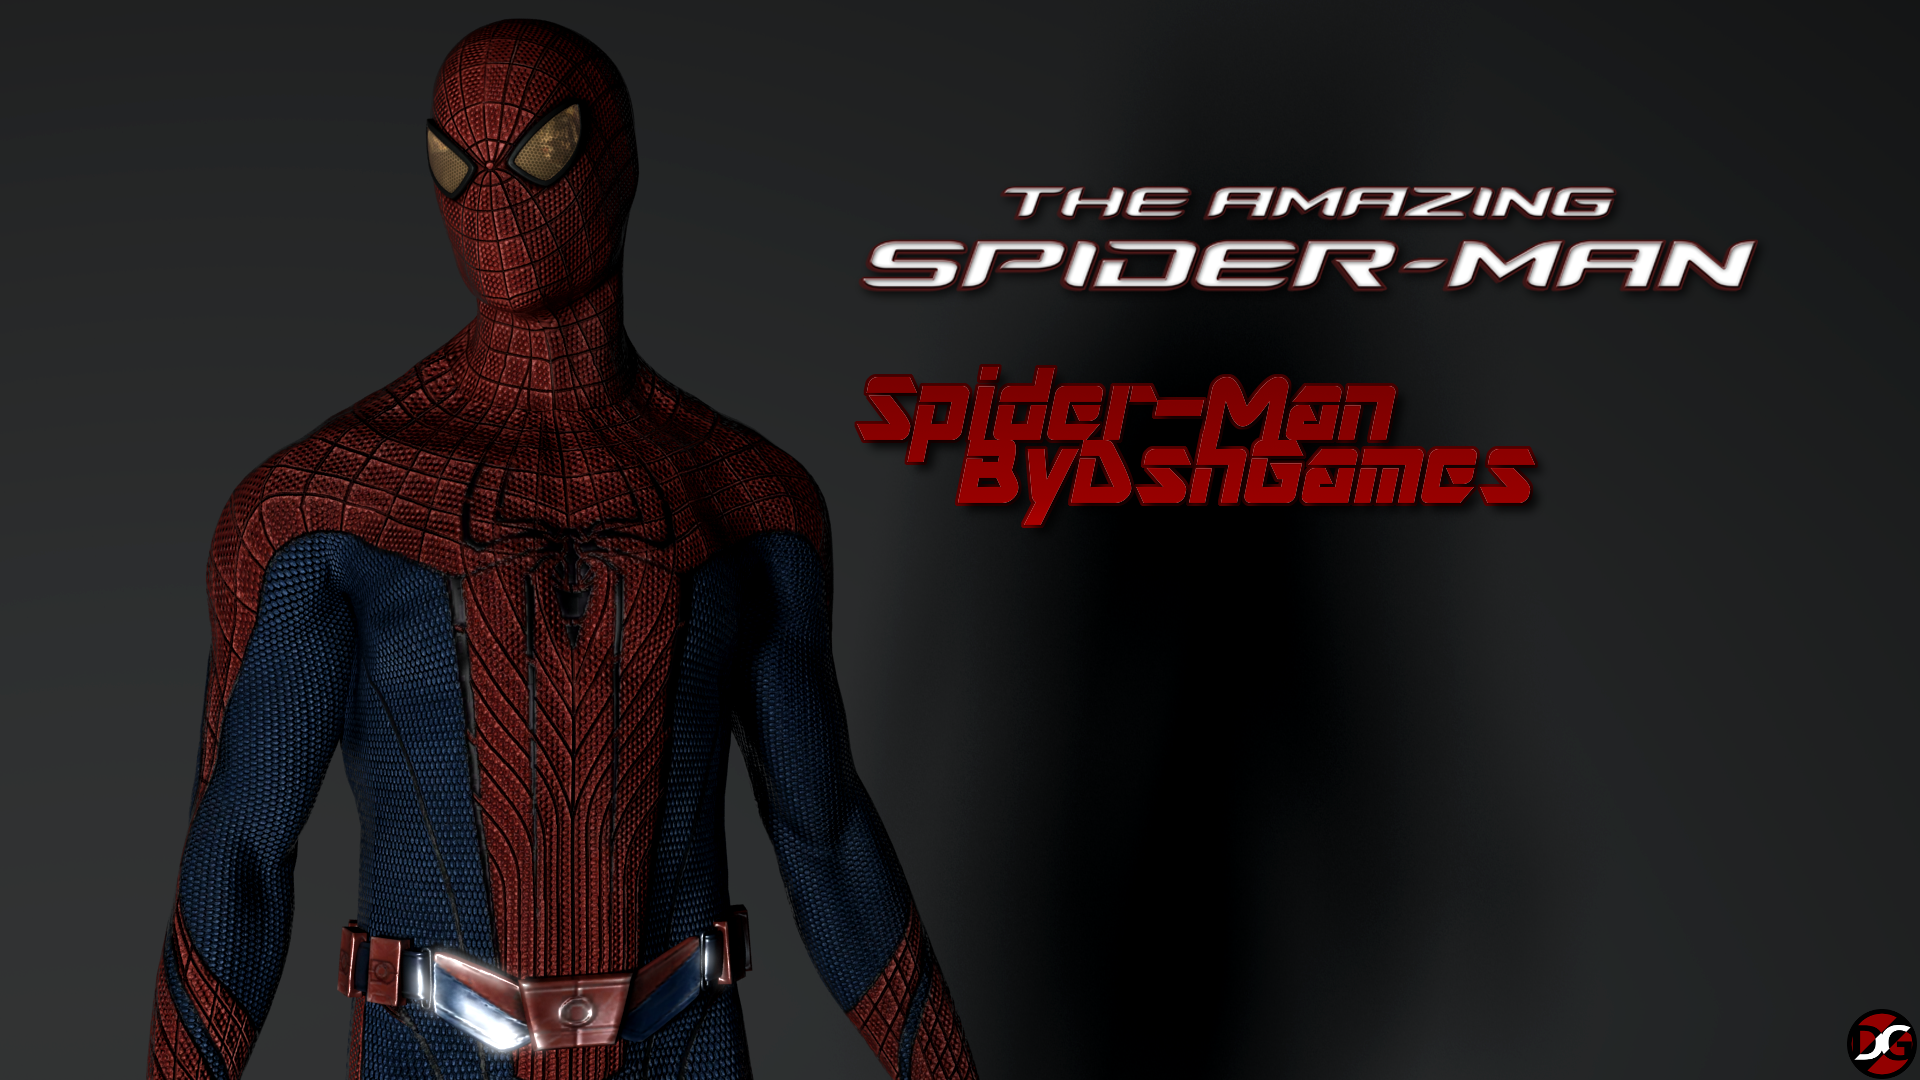 The Amazing Spider-Man gta 0